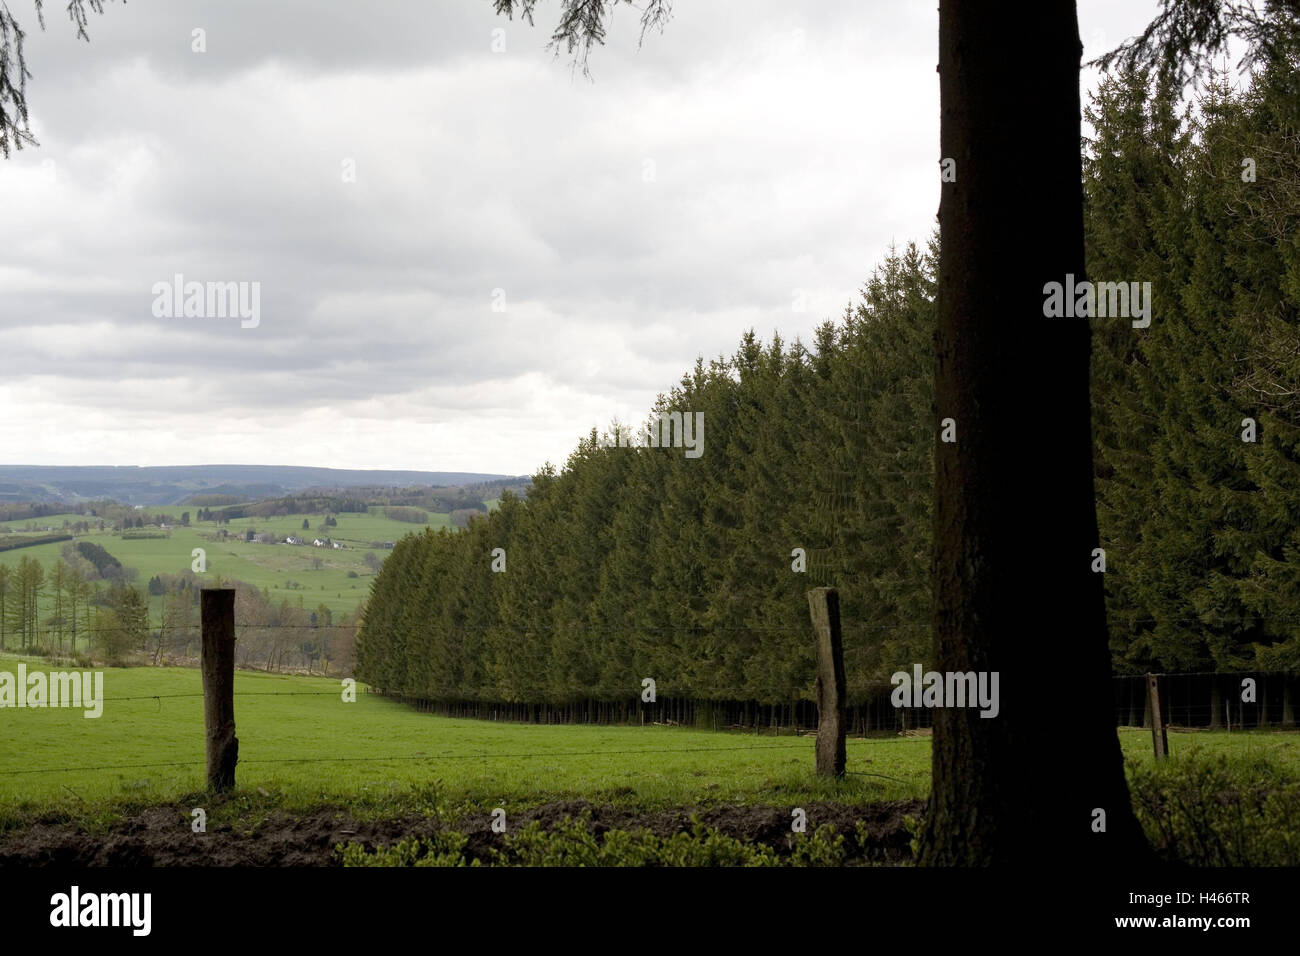 Trees Belgium Stockfotos & Trees Belgium Bilder Seite 13 Alamy